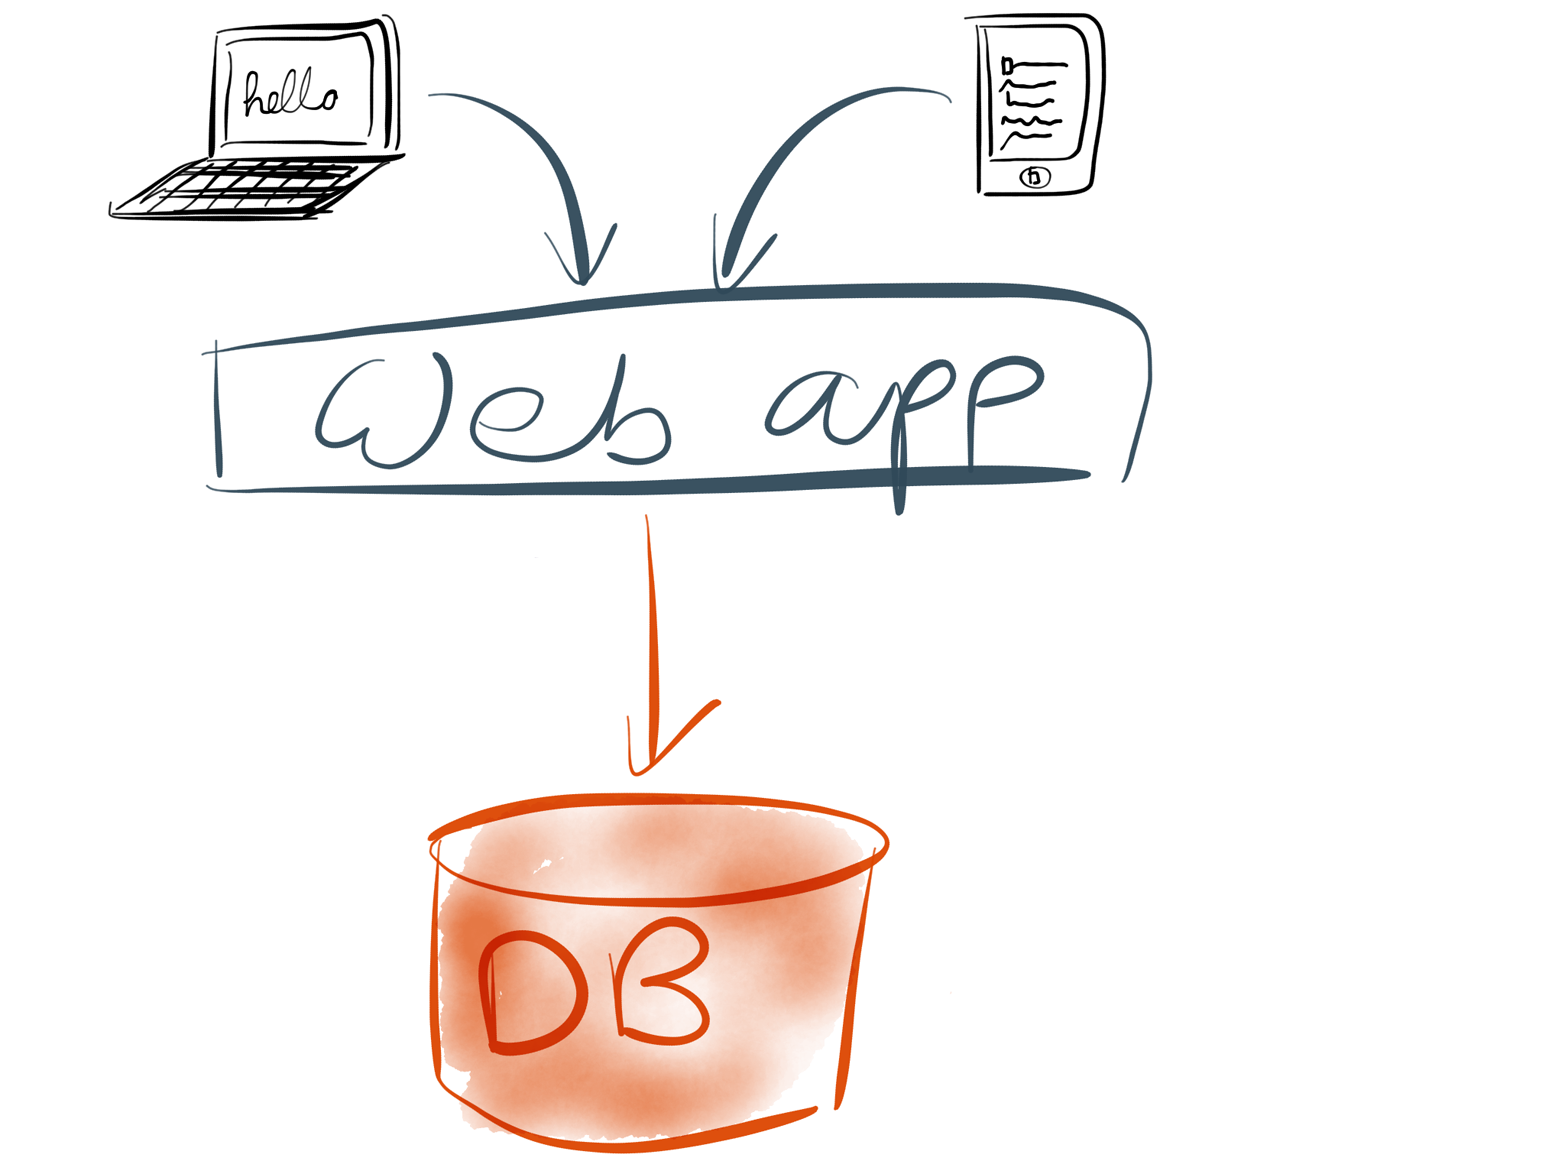 One web app, one database: life is simple.